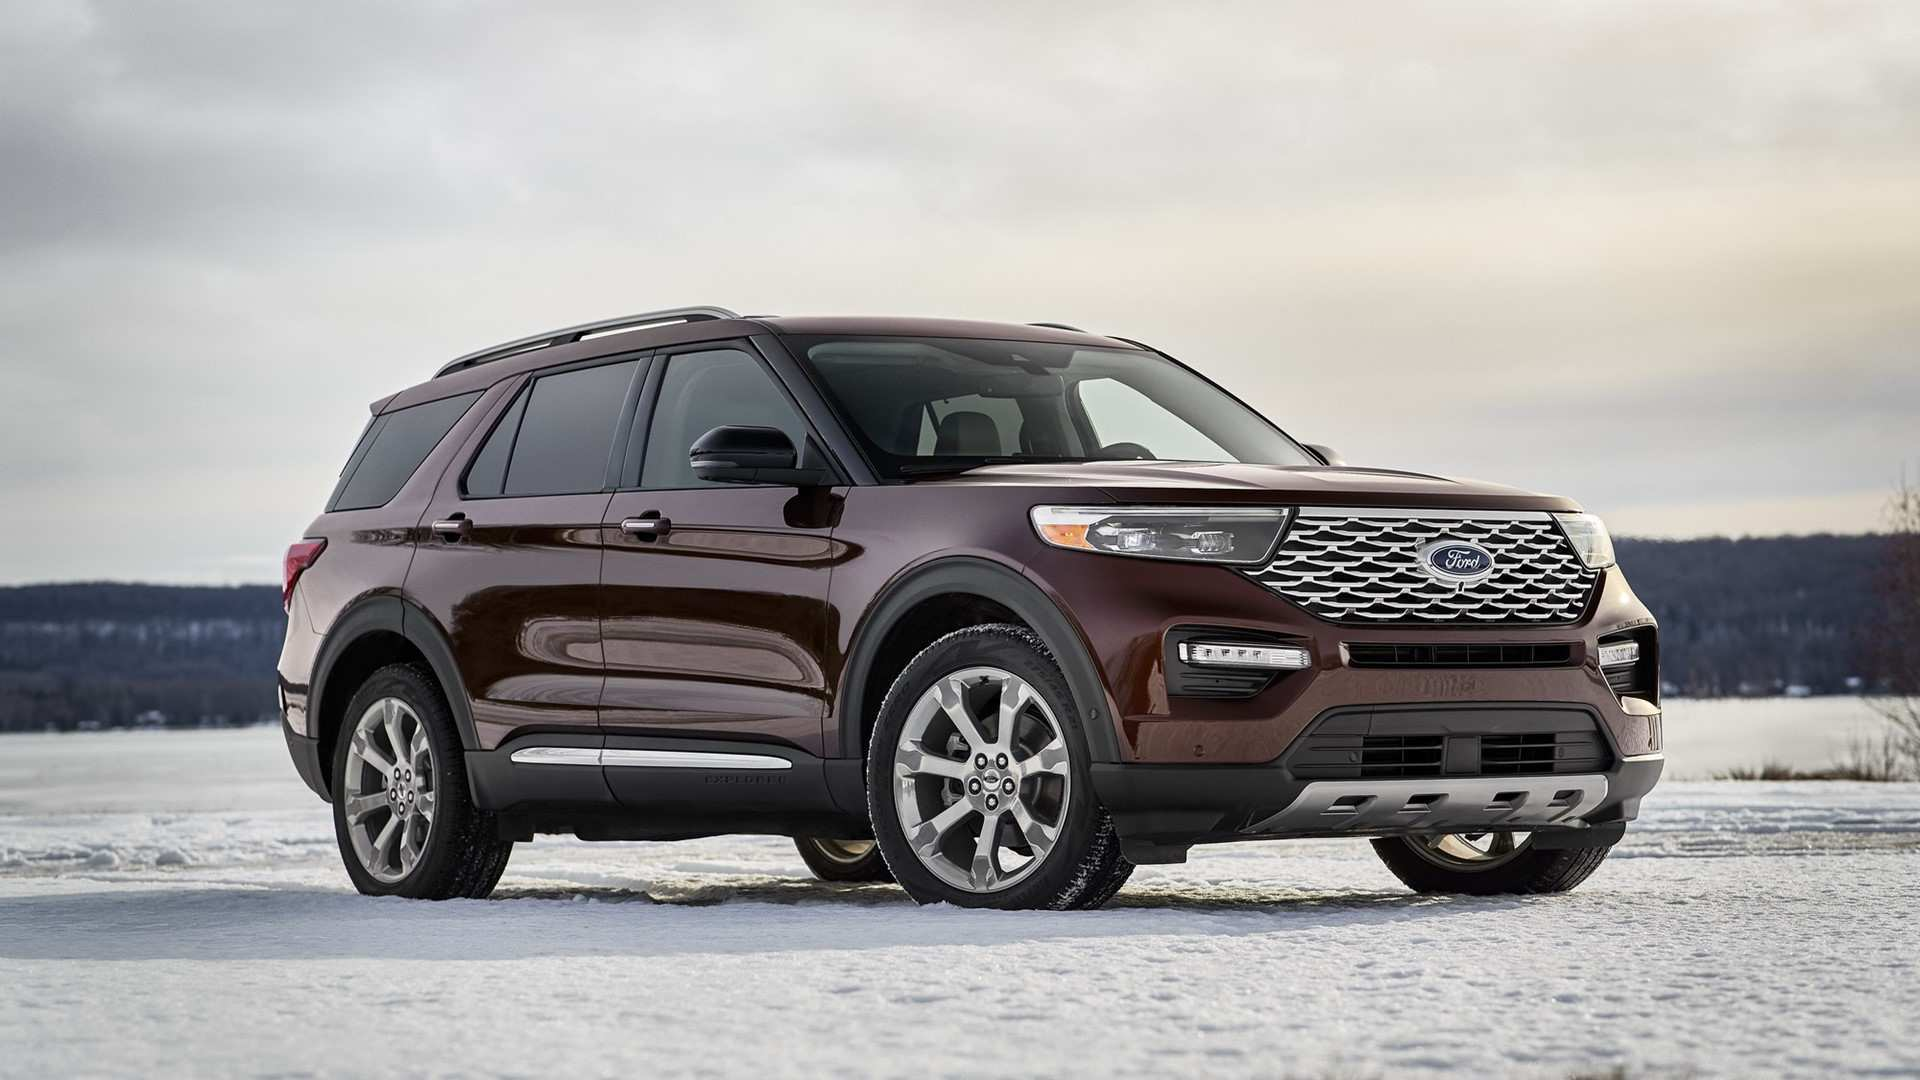 15 New Ford New Suv 2020 Rumors with Ford New Suv 2020